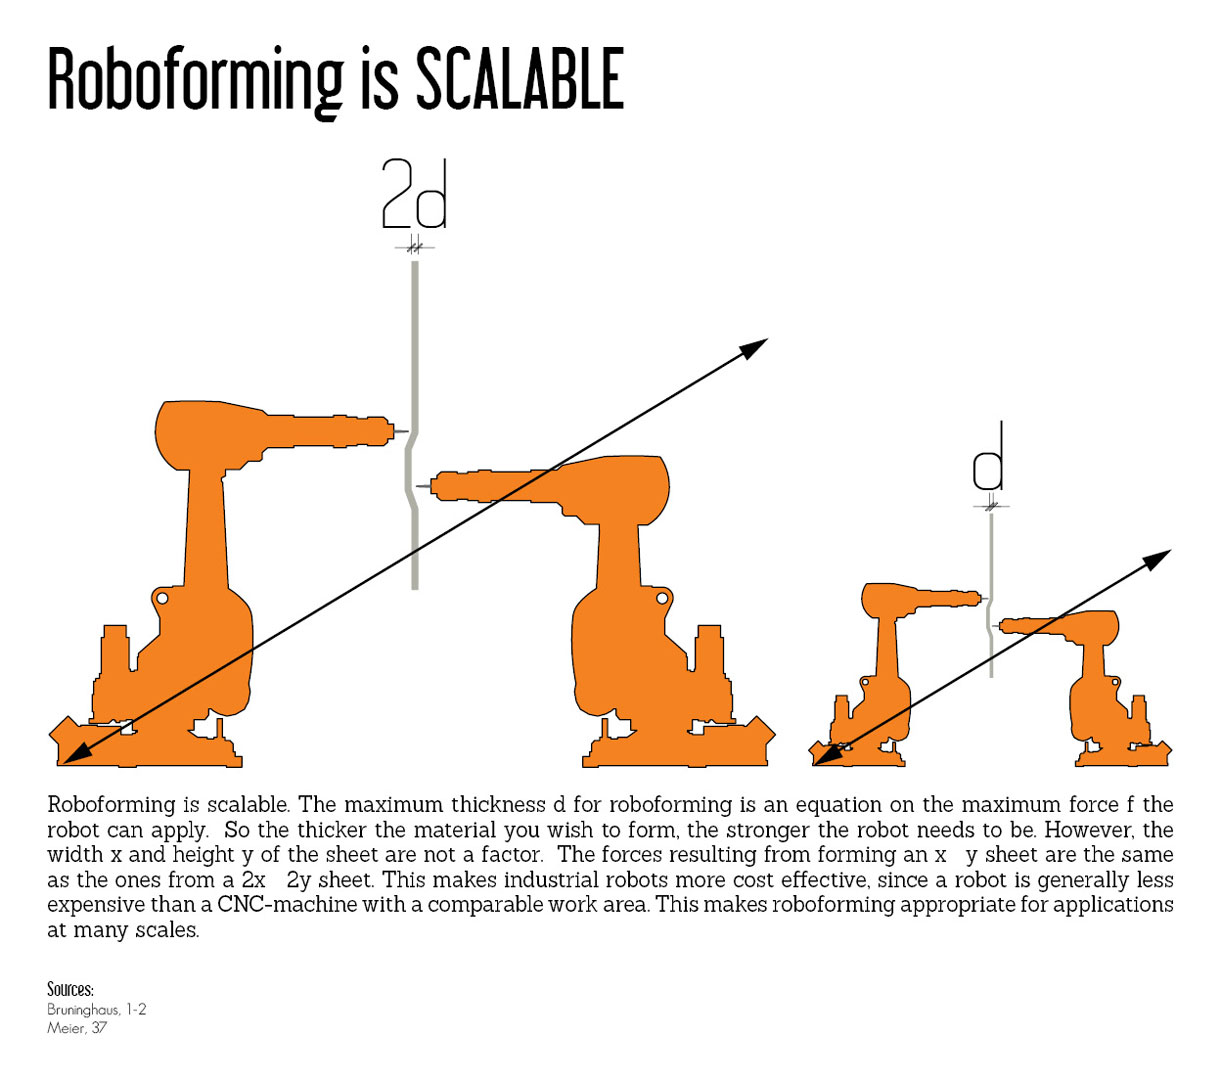 Roboforming is Scalable